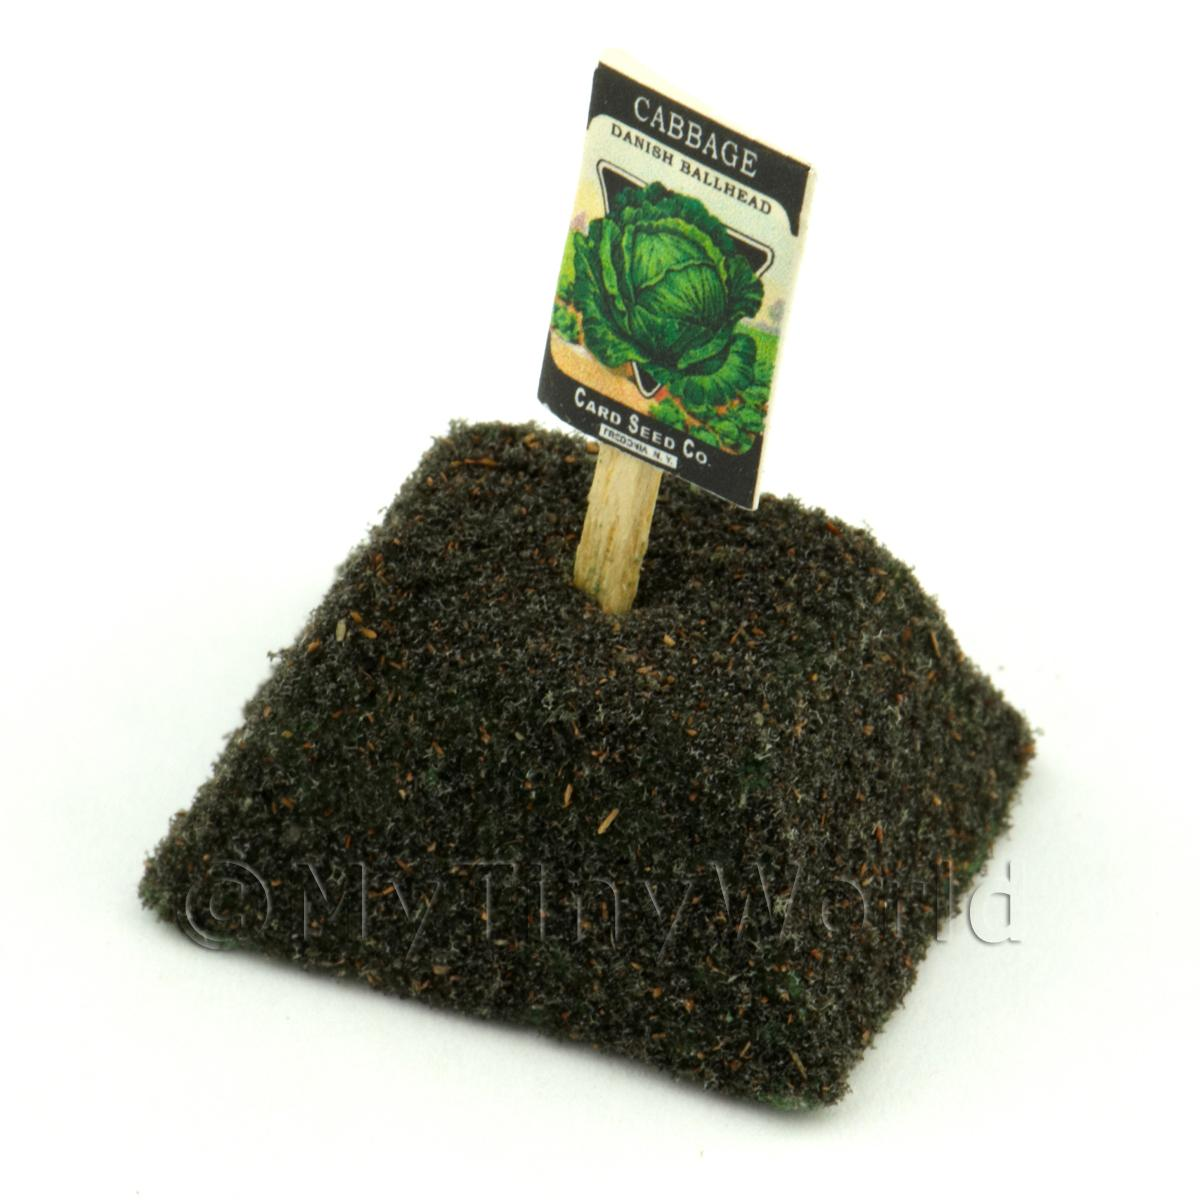 Dolls House Miniature Ballhead Cabbage Seed Packet With A Stick